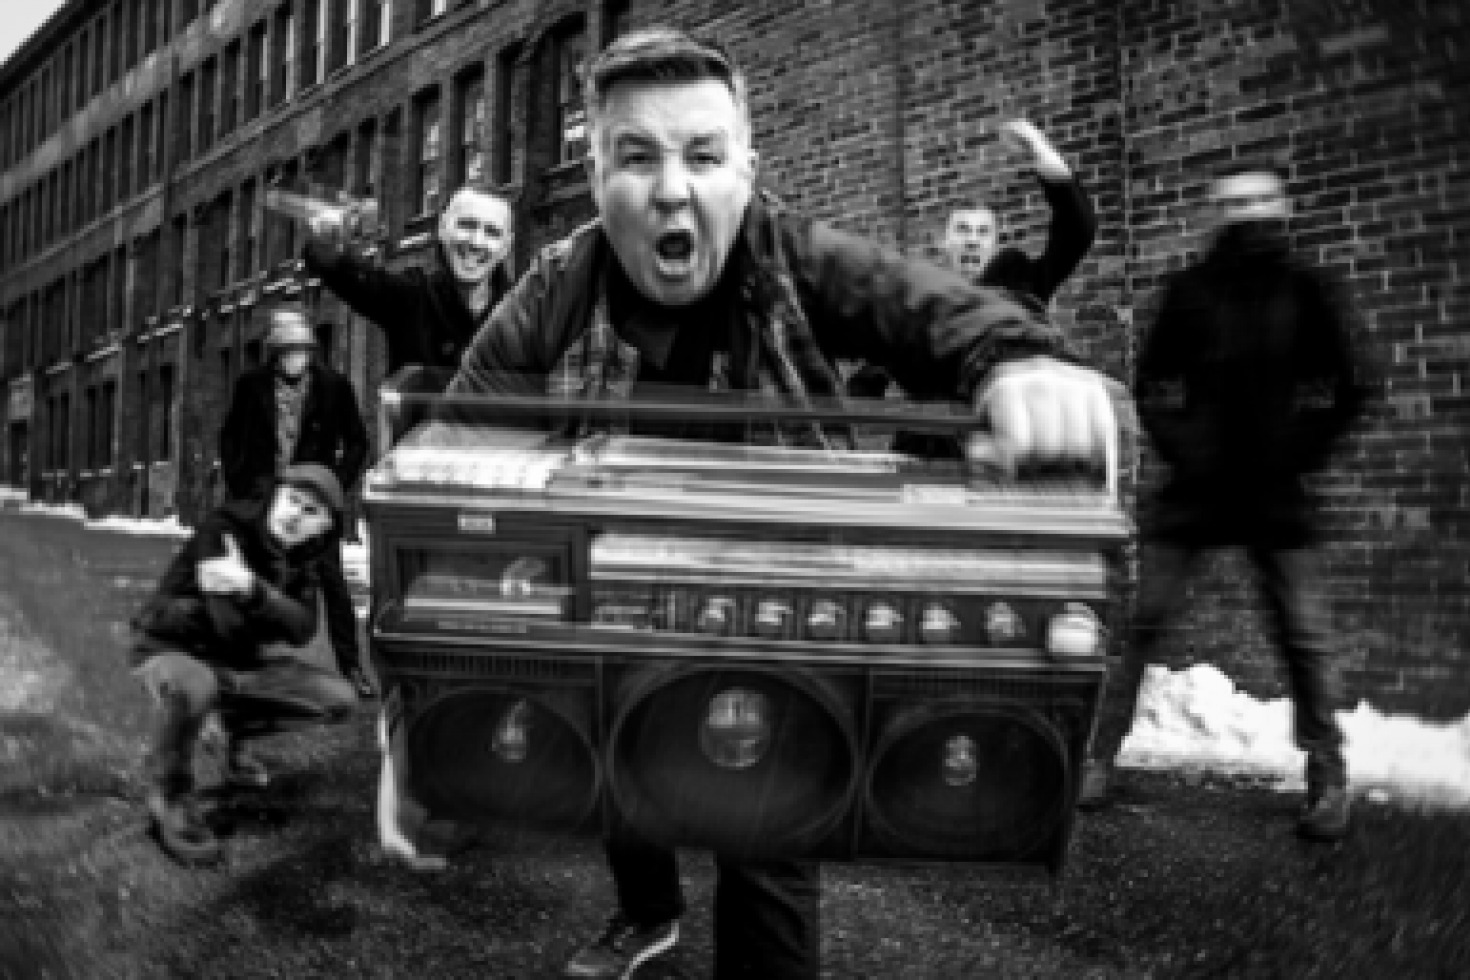 Dropkick Murphys 'Turn Up That Dial' album release party - free live stream concert